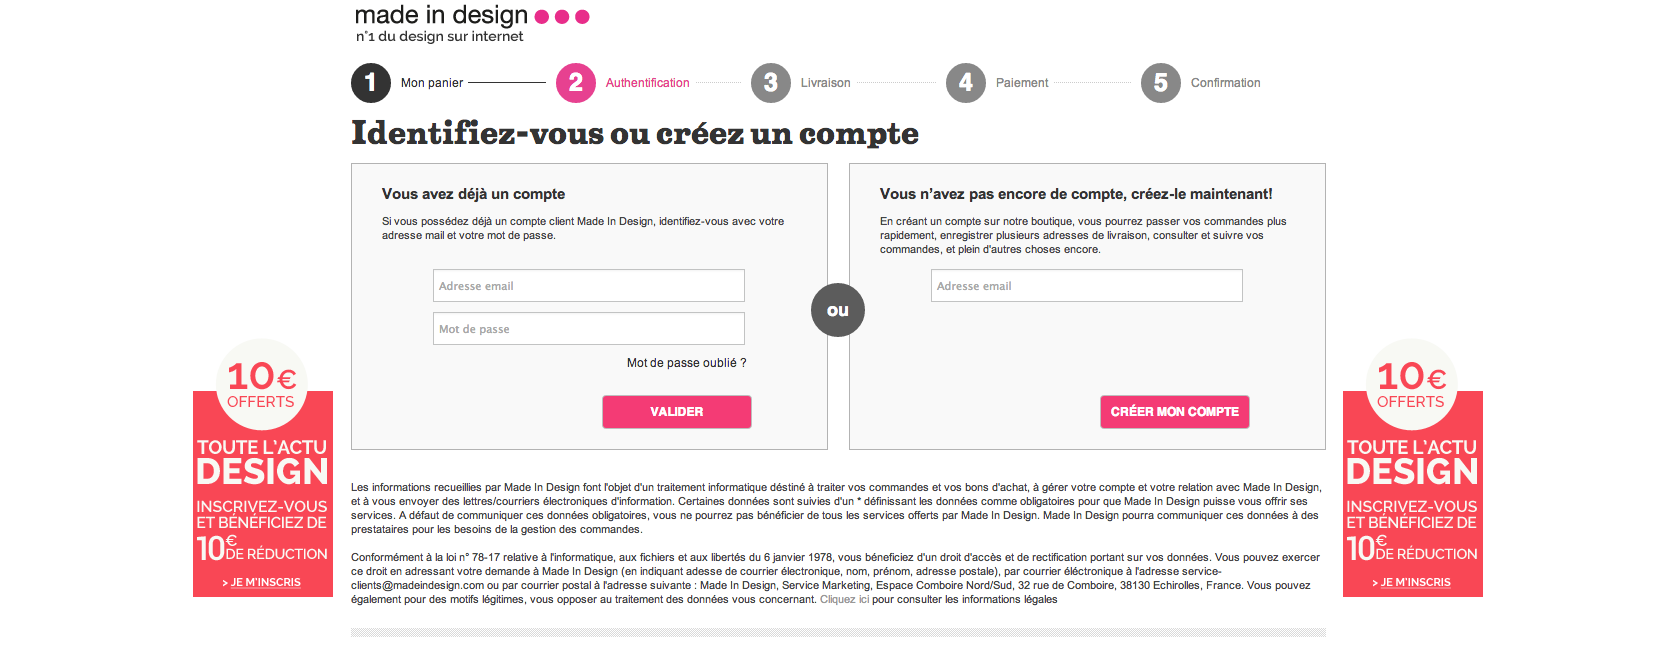 ergo-note-revue-ergonomique-du-site-made-in-design-com-checkout